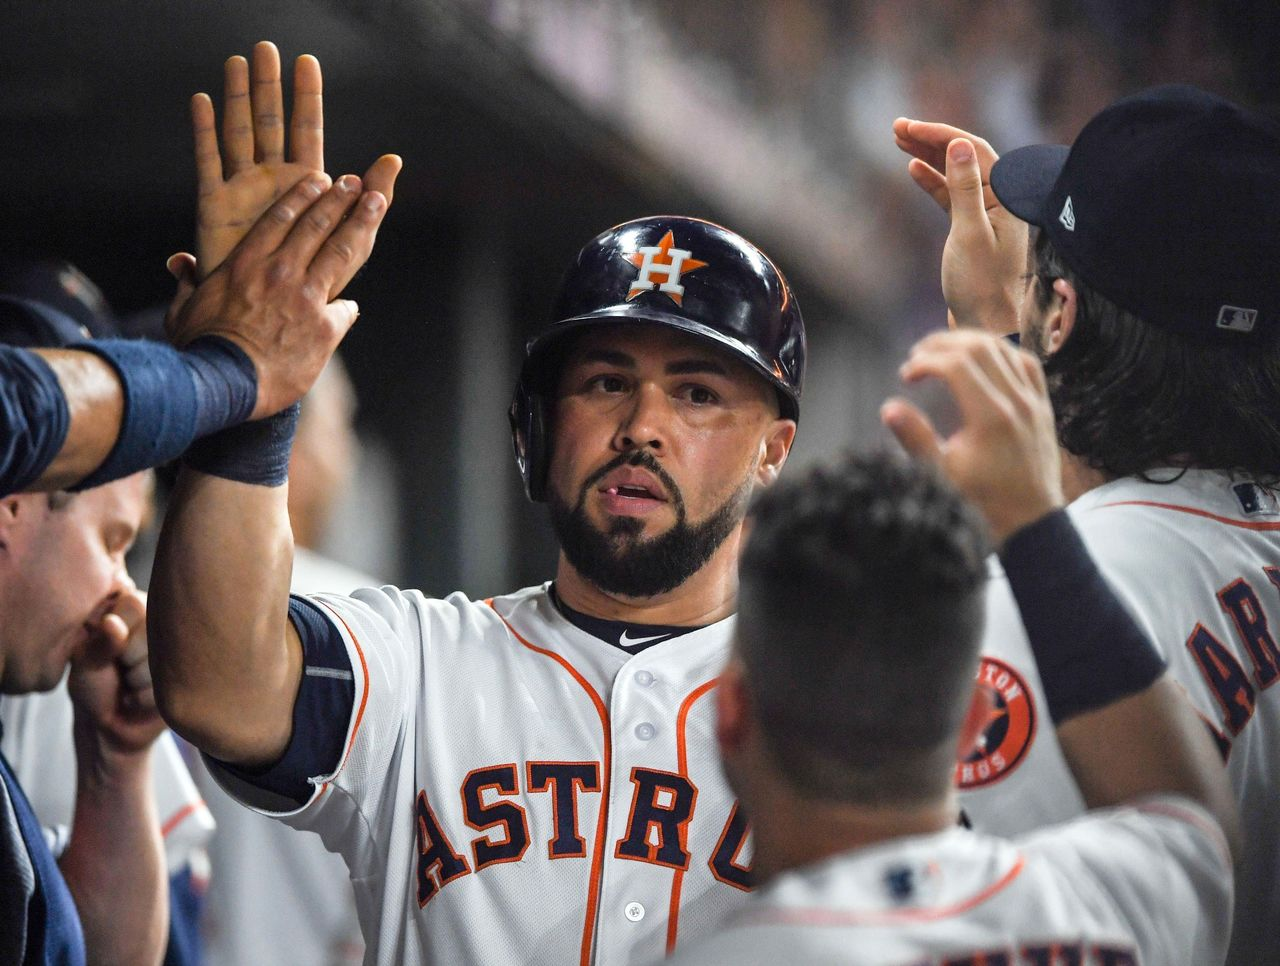 Cropped_2017-06-13t020324z_72854656_nocid_rtrmadp_3_mlb-texas-rangers-at-houston-astros